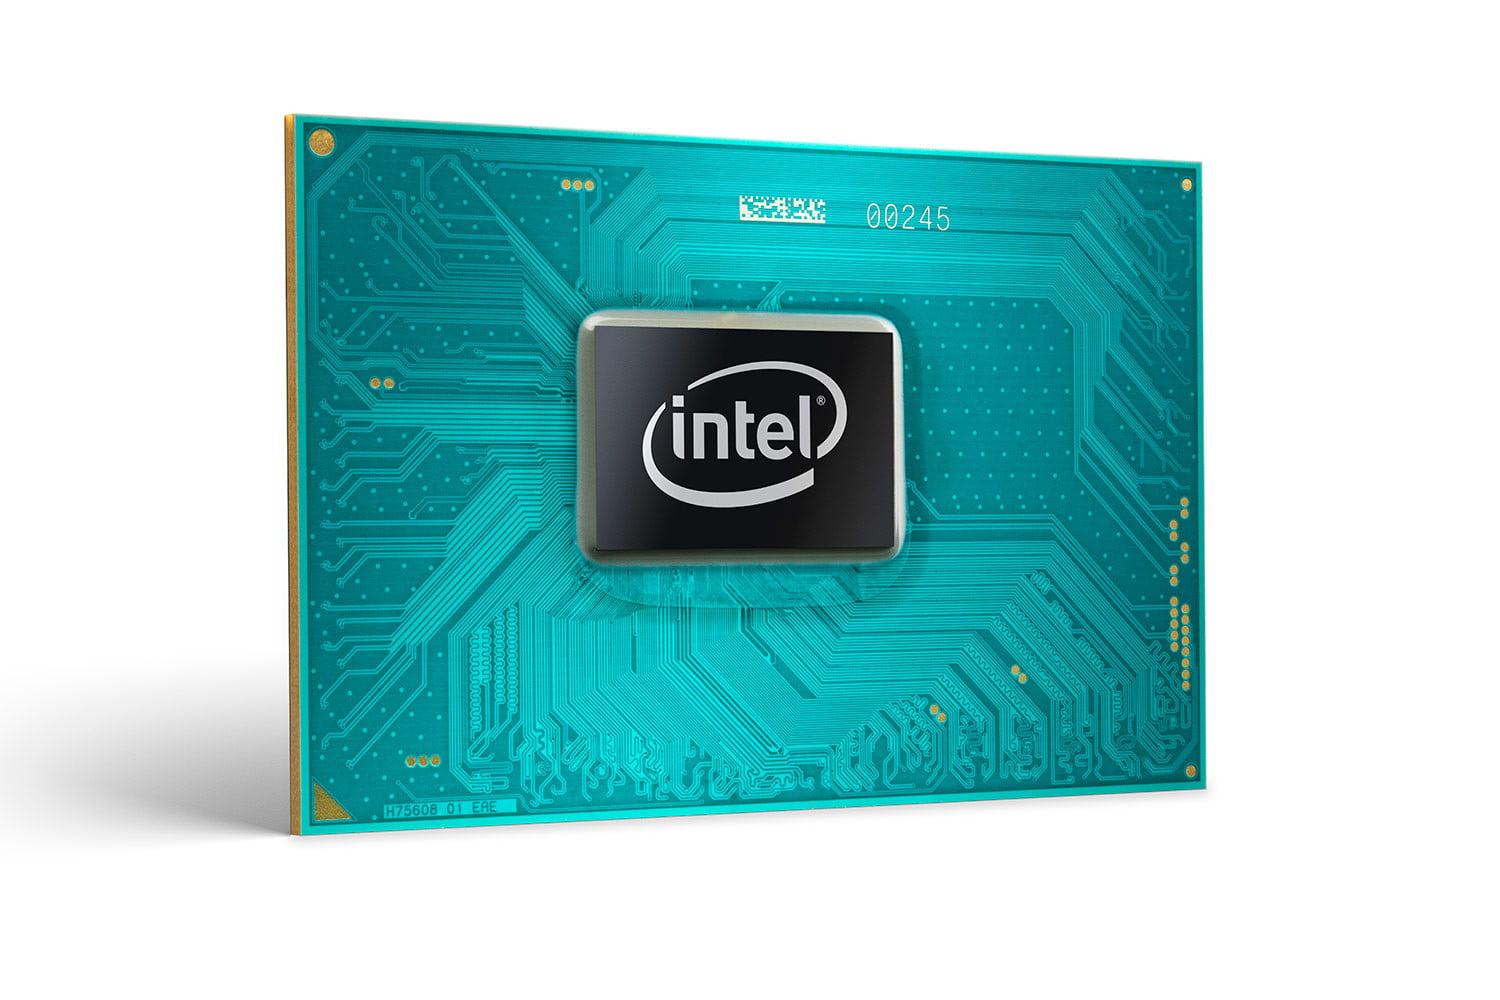 7th generation intel core ces 2017 kby lake h 4 2 front right 05 whitebkg